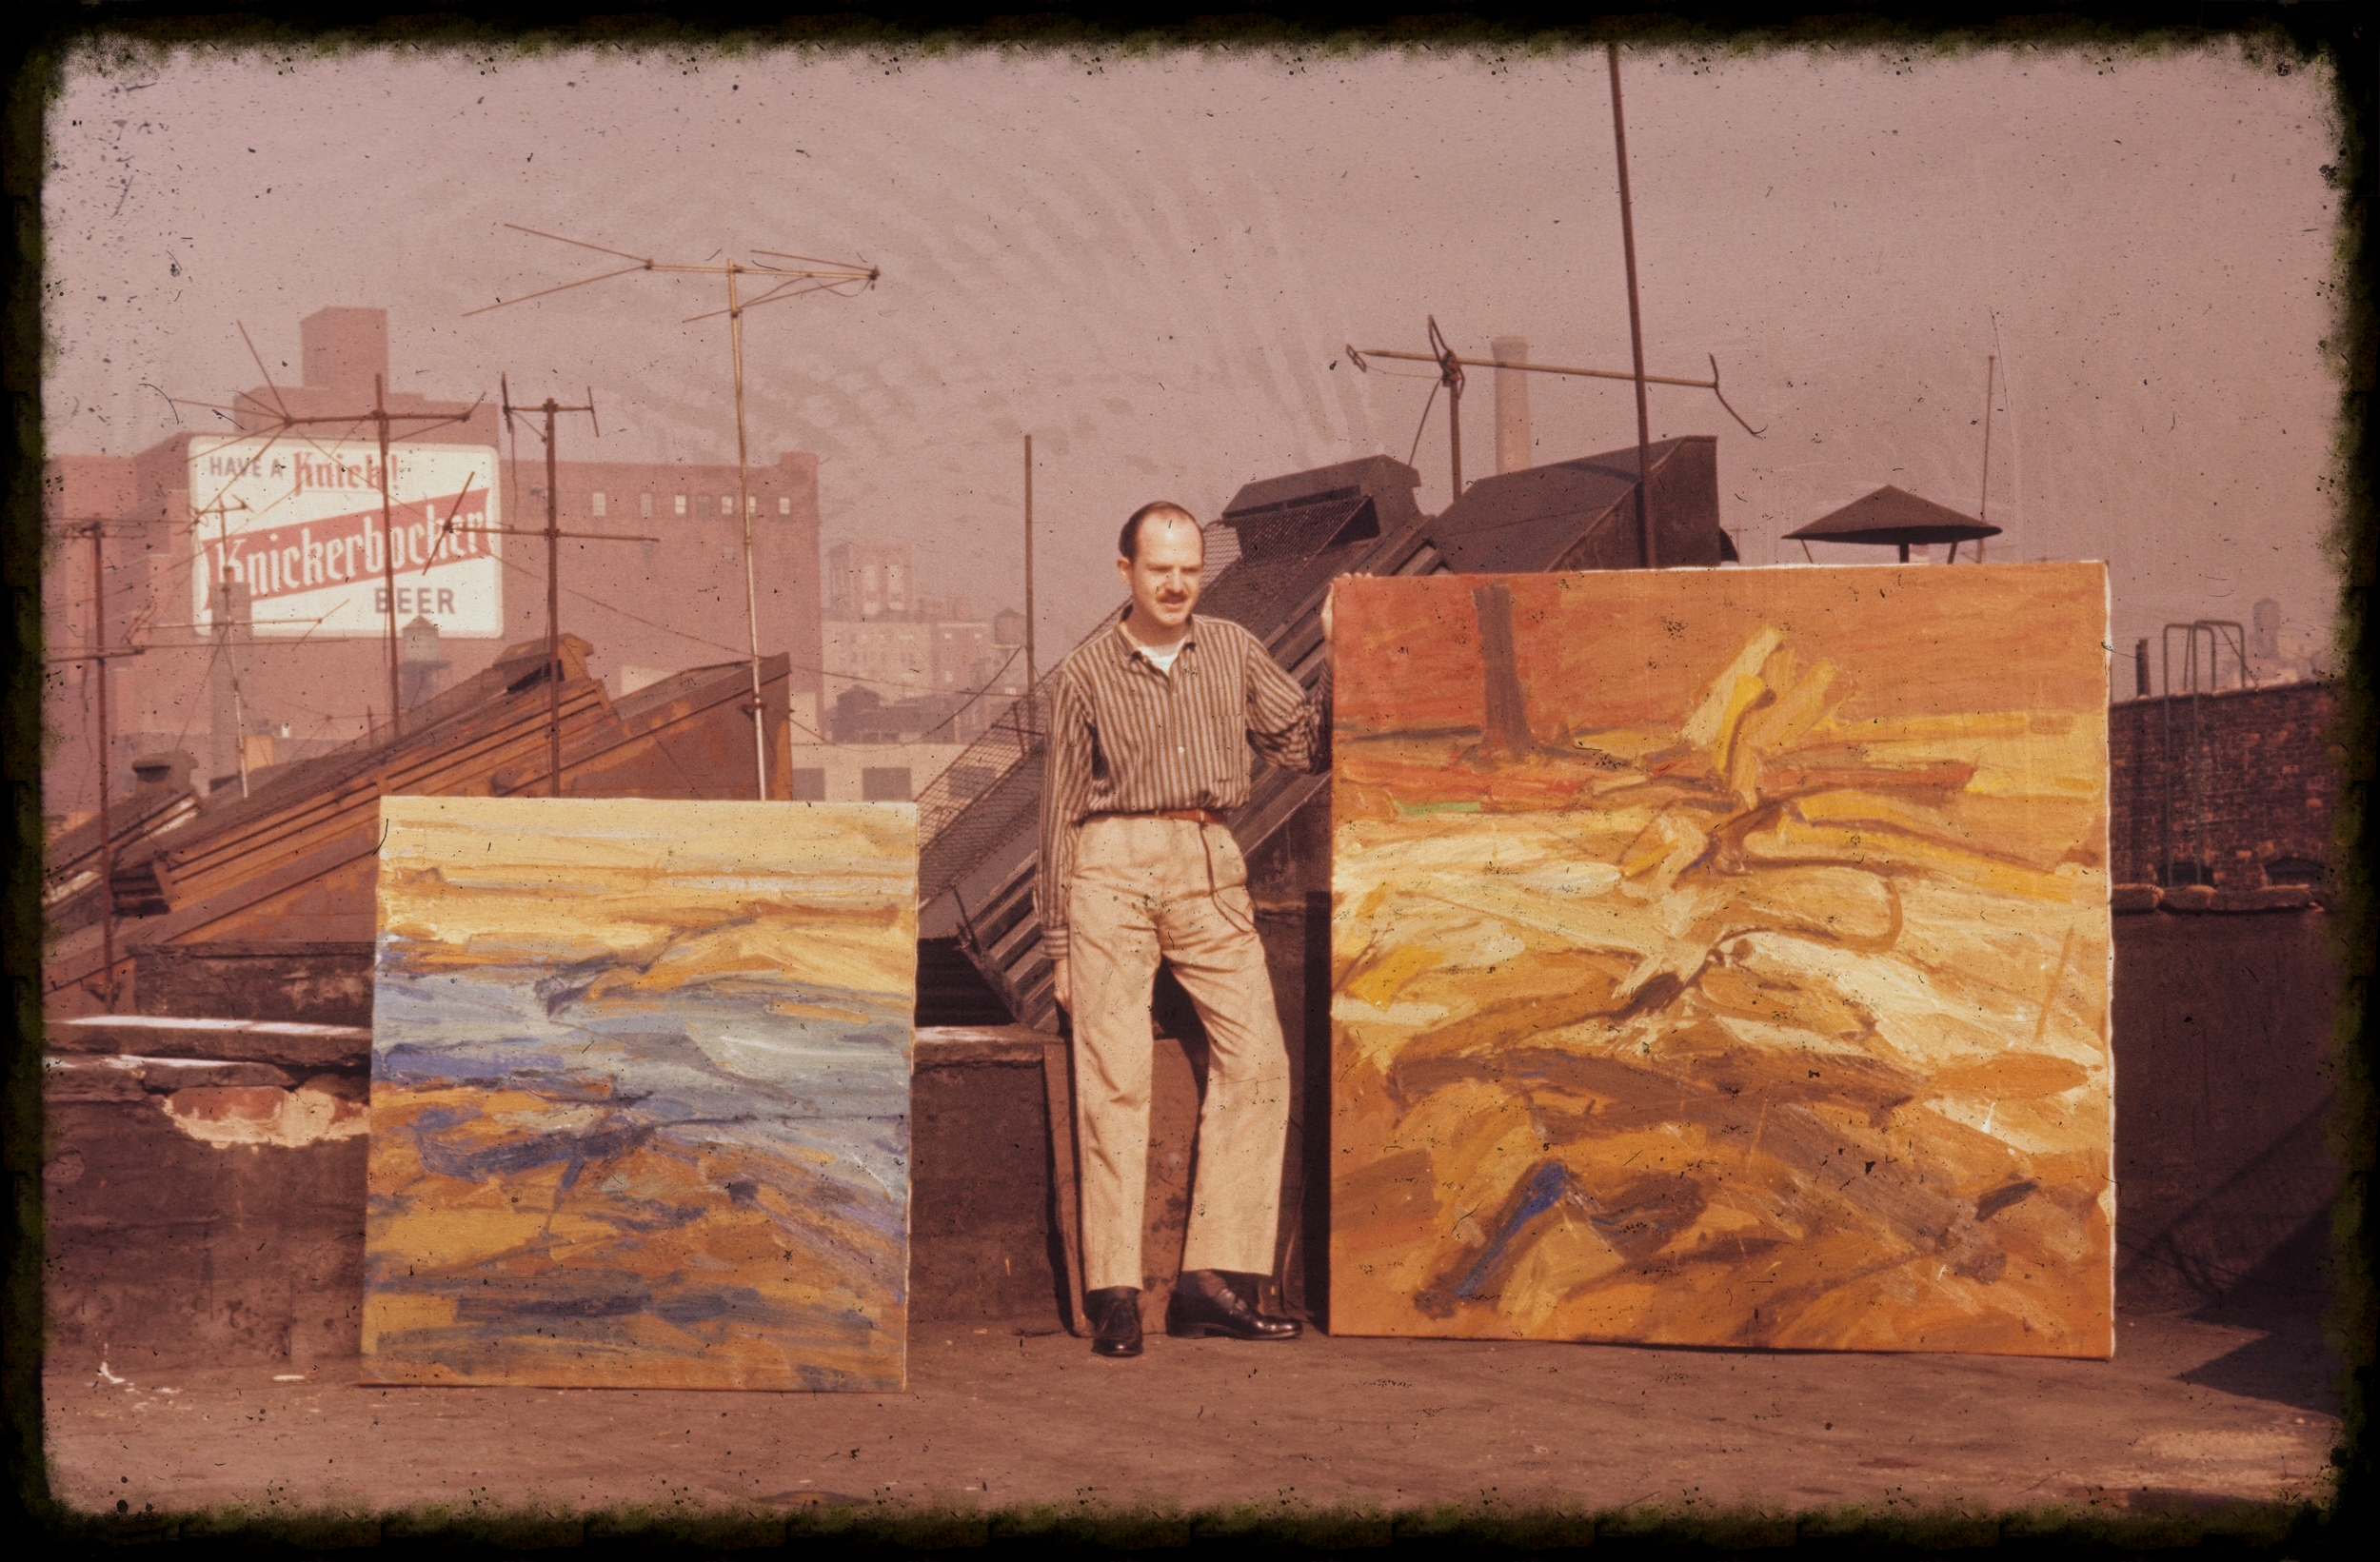 Jim Harvey with two paintings in NYC circa 1960. Photo courtesy of Bill Harvey.